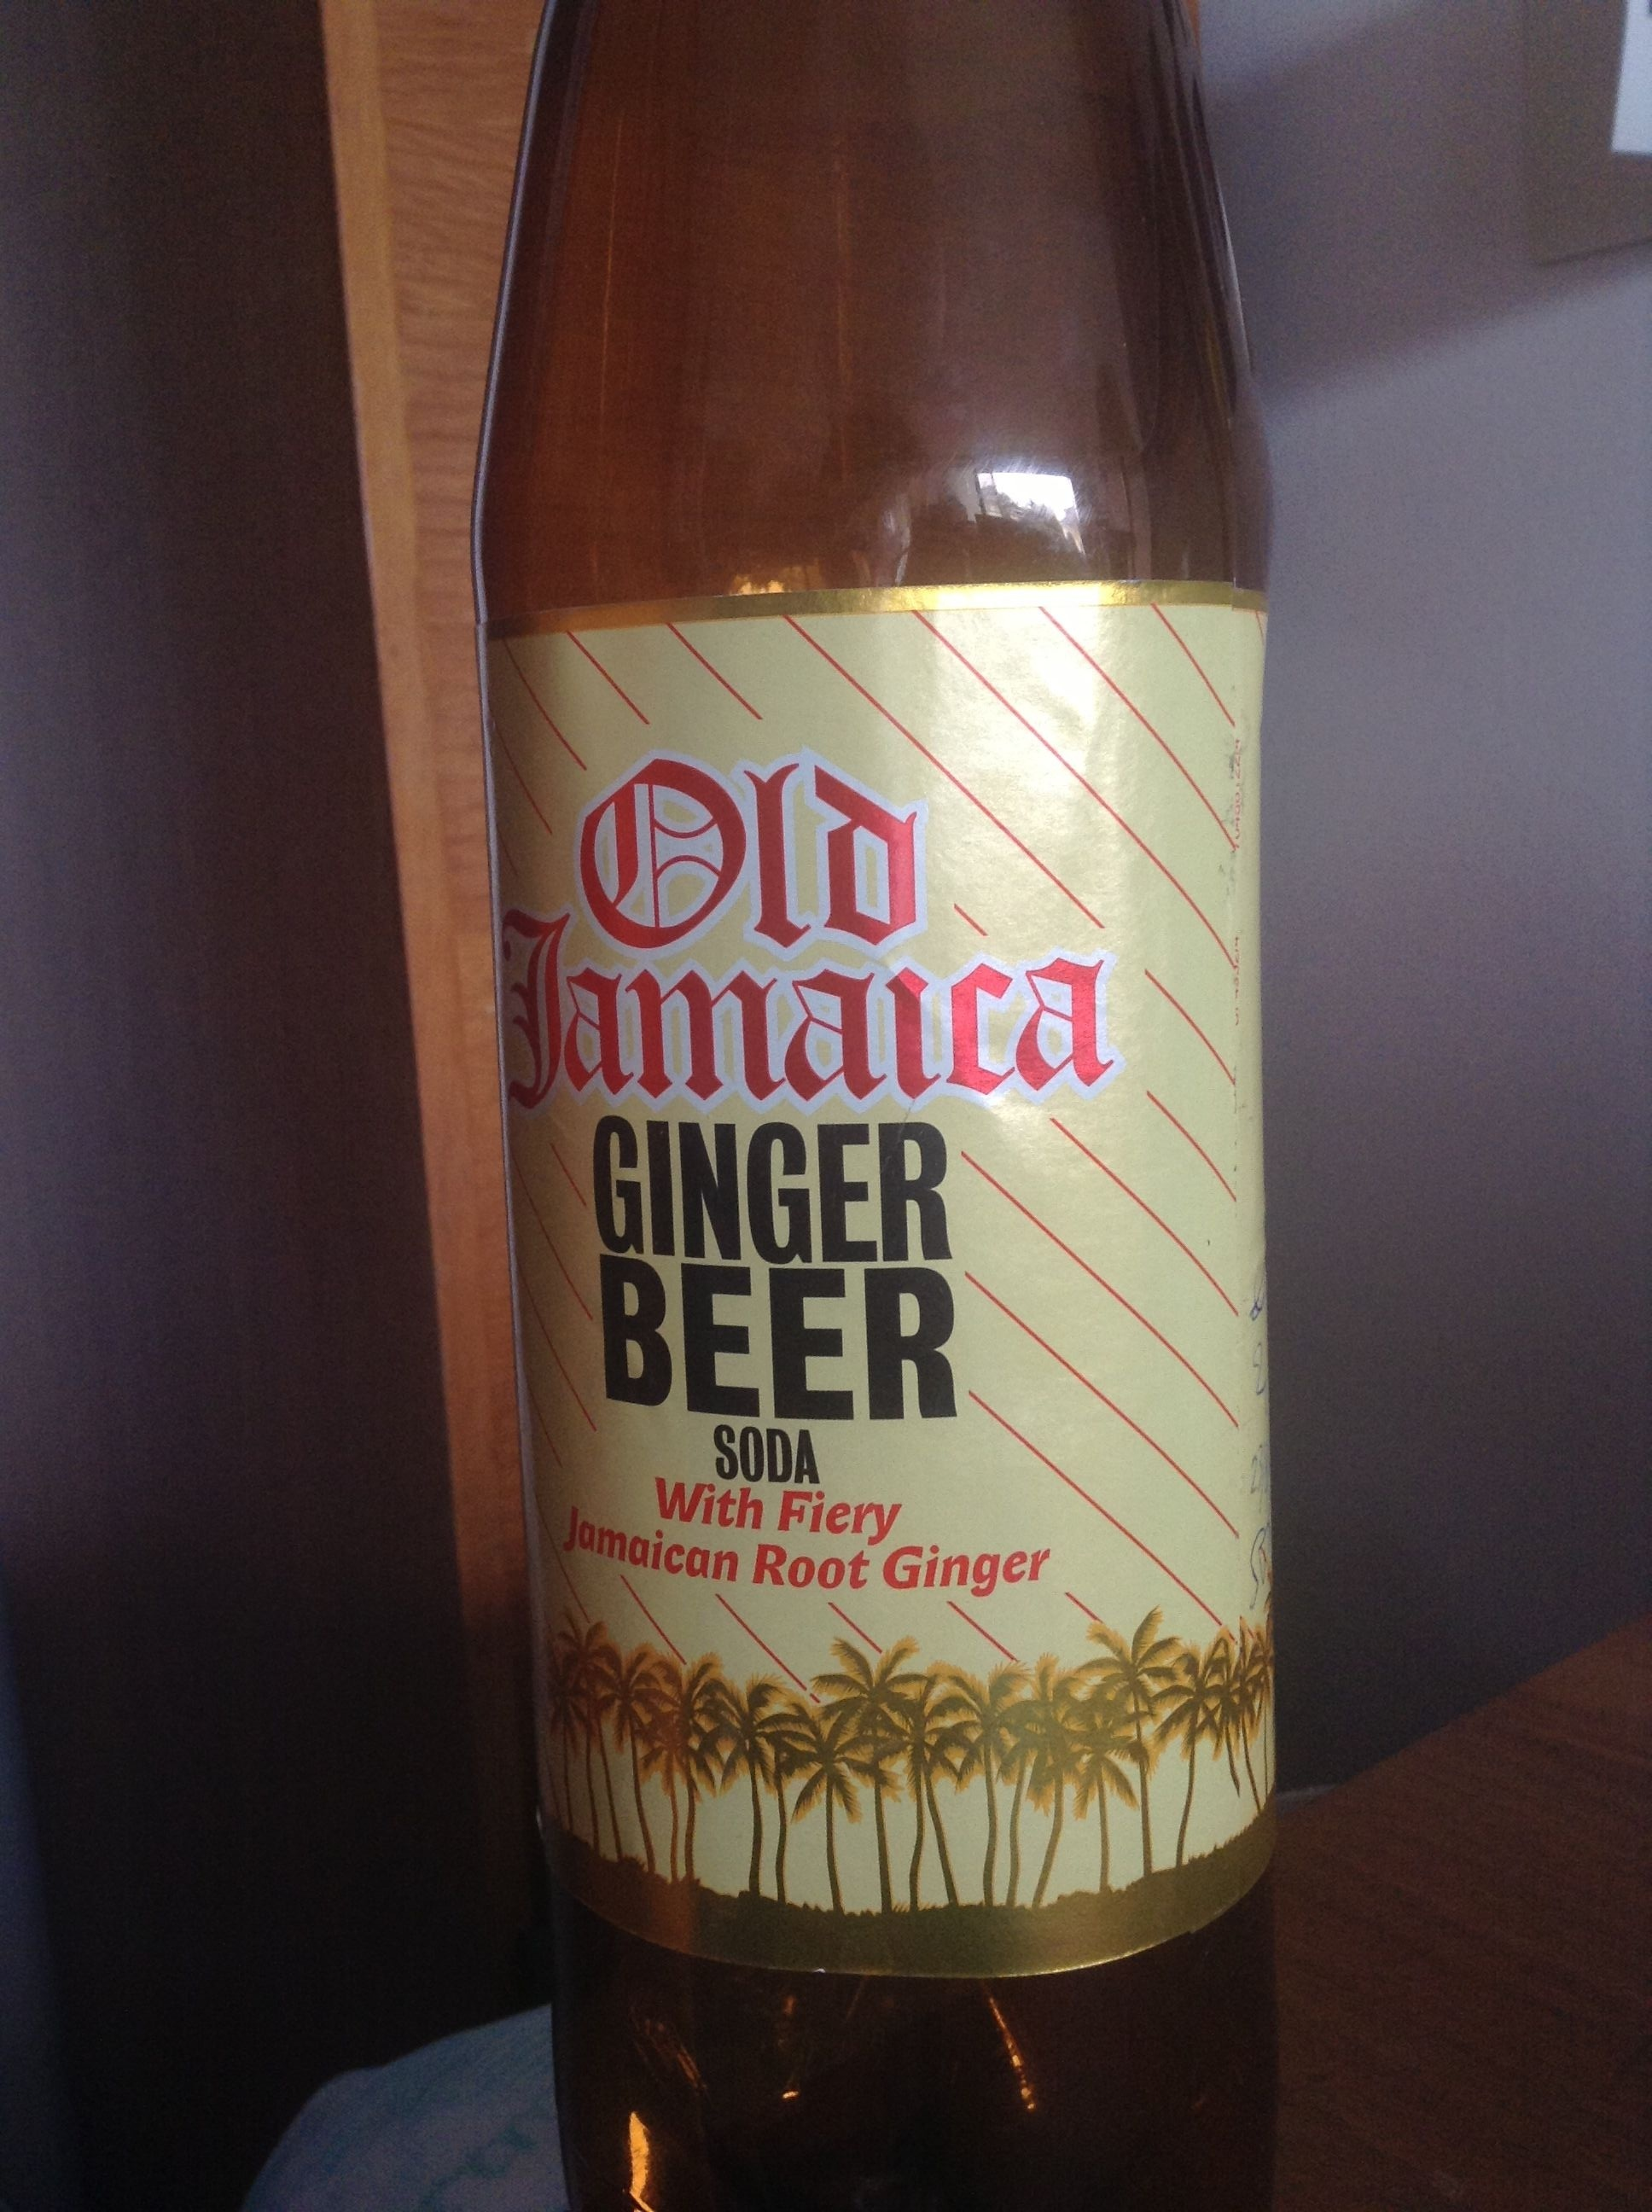 Finger Beer Soda with Fiery Jamaican Root Ginger - Product